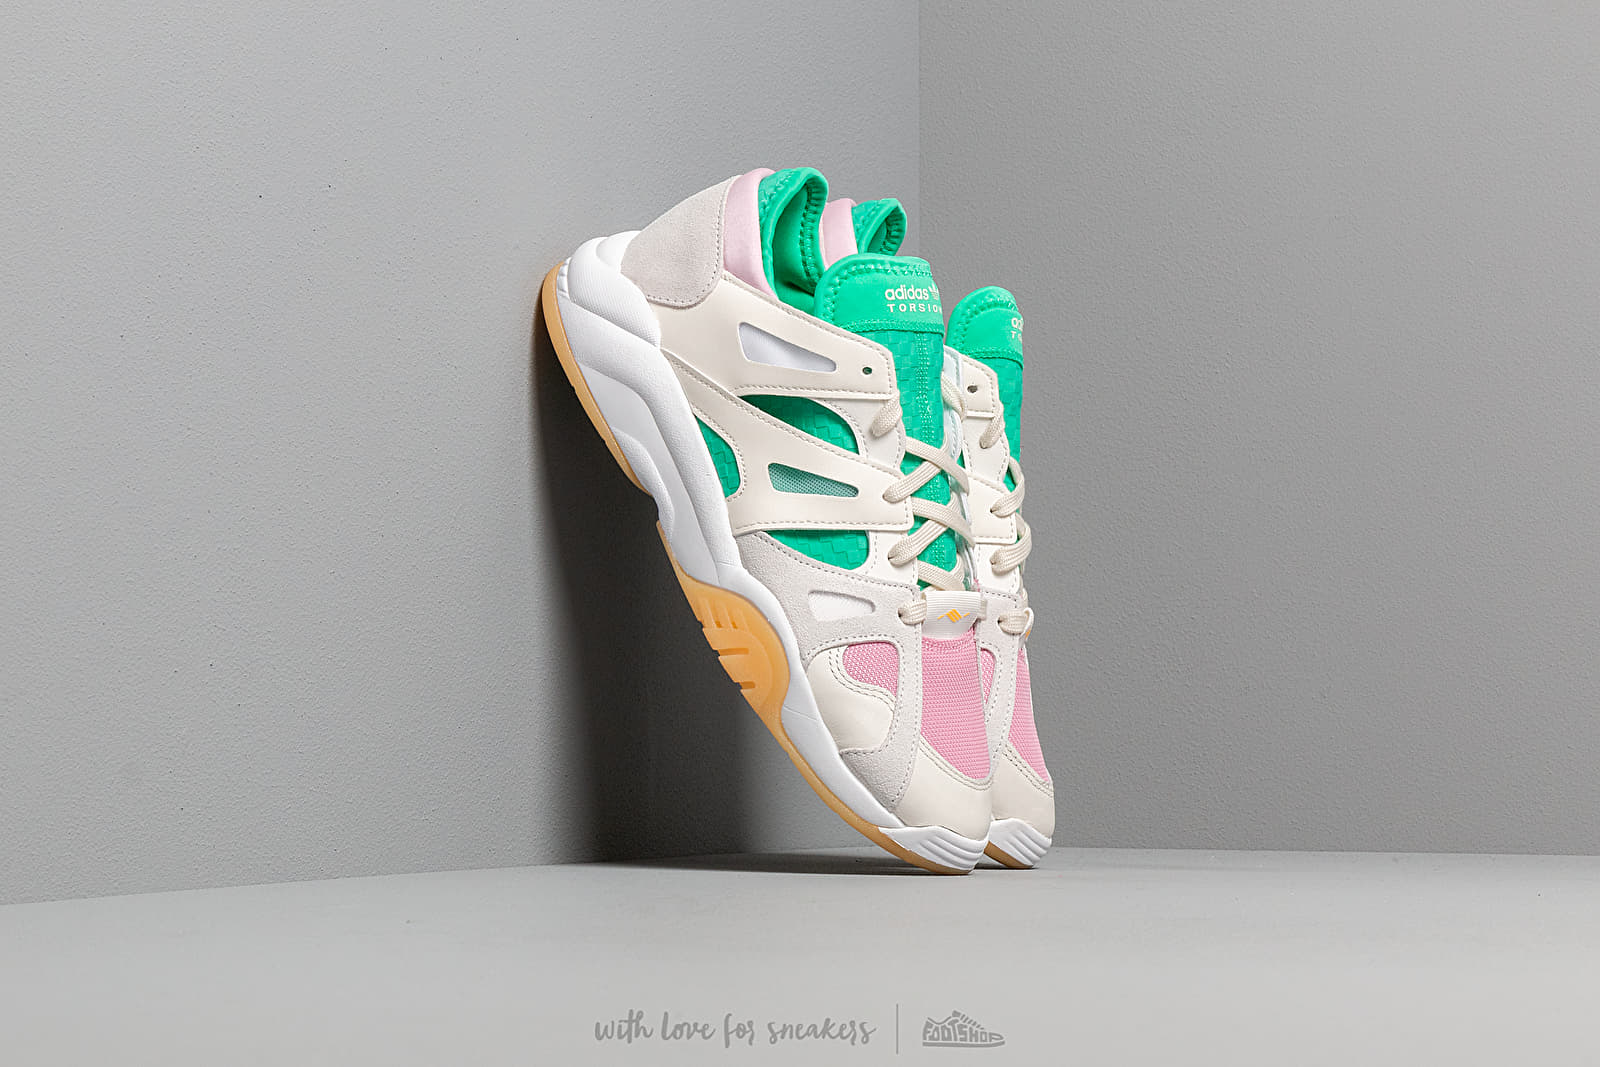 Pánské tenisky a boty adidas Dimension Low Top Cloud White/ Off White/ Hi-Res Green